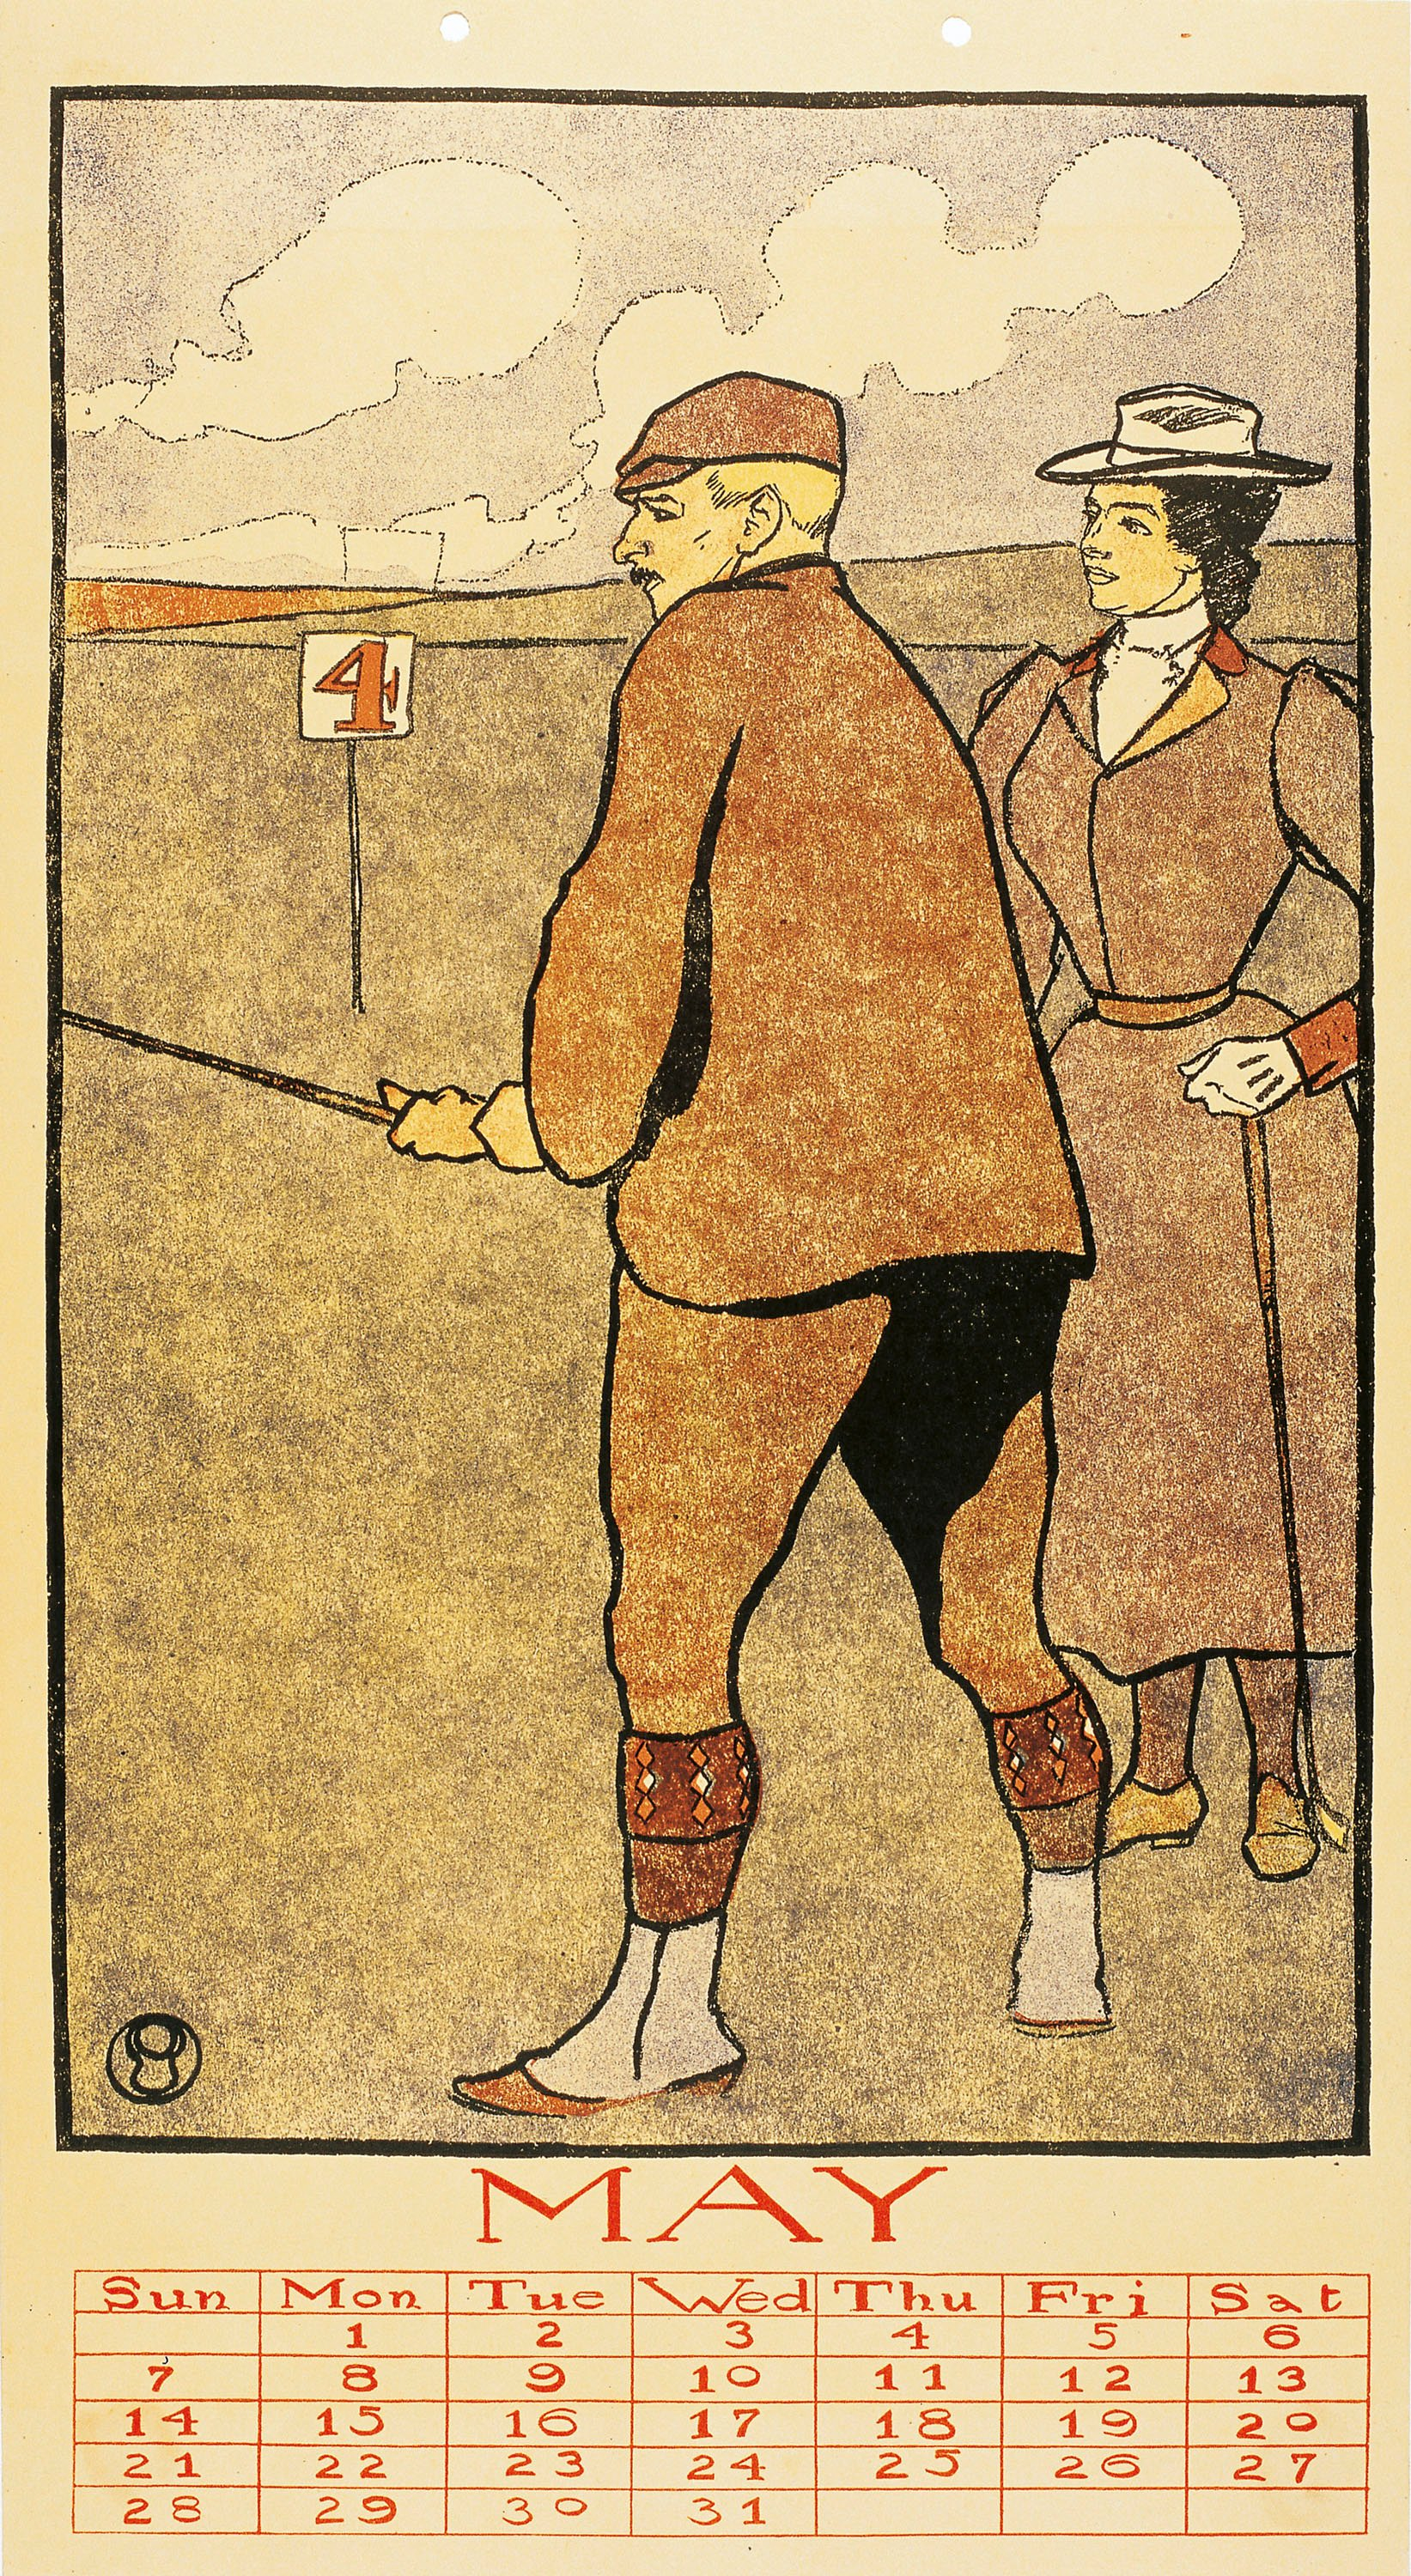 Edward Penfield - May (Golf Calendar) - 1899